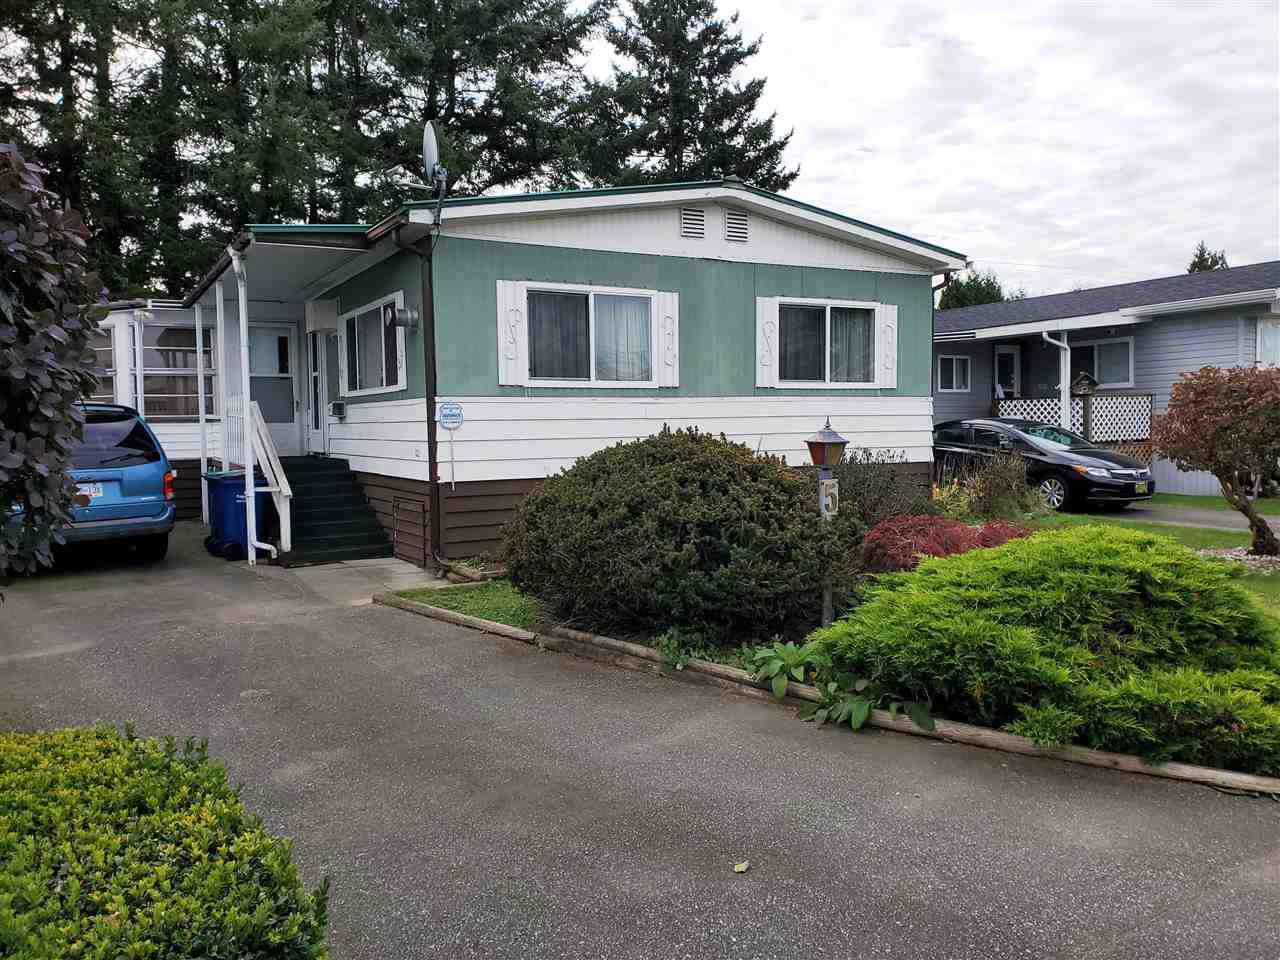 """Main Photo: 5 31313 LIVINGSTONE Avenue in Abbotsford: Abbotsford West Manufactured Home for sale in """"Paradise Park"""" : MLS®# R2511873"""